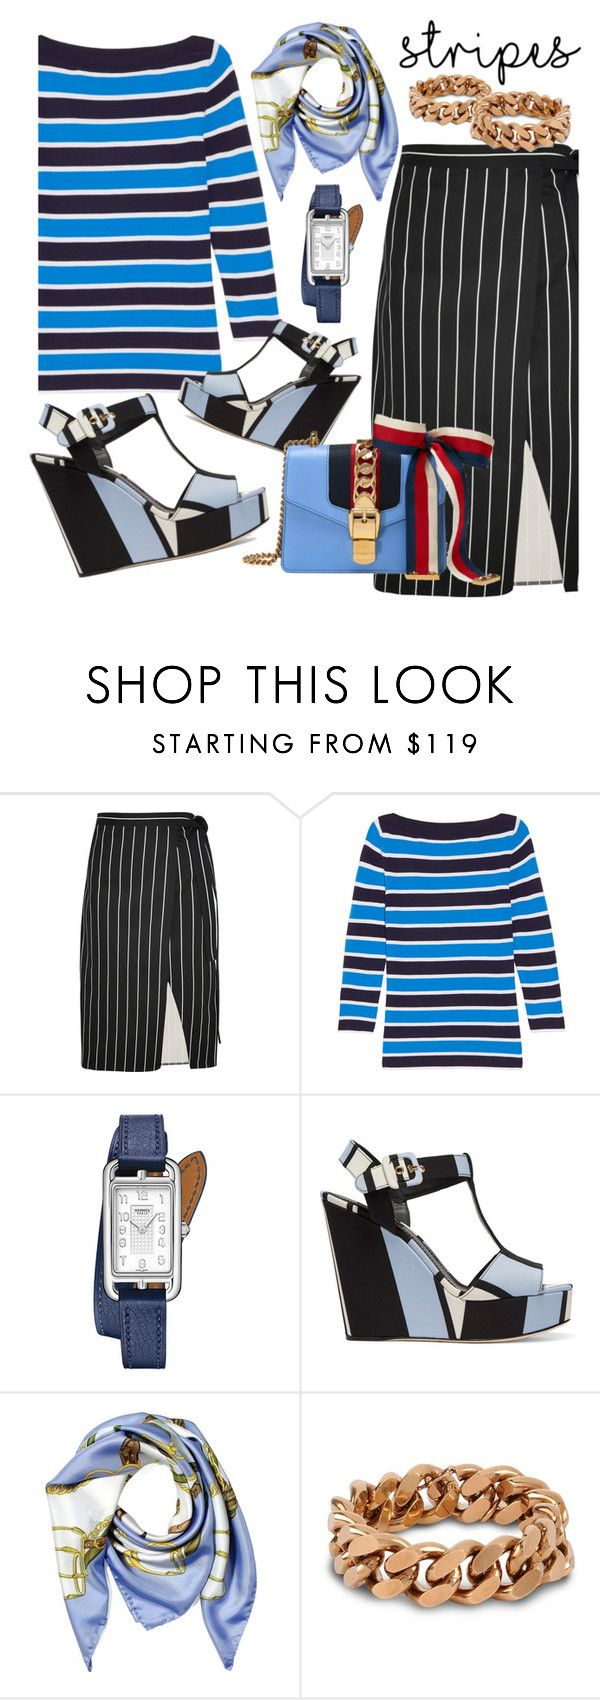 """""""The new stripes"""" by sophier on Polyvore featuring Balenciaga, Michael Kors, Hermès, Dolce&Gabbana, Aspinal of London, STELLA McCARTNEY and Gucci"""